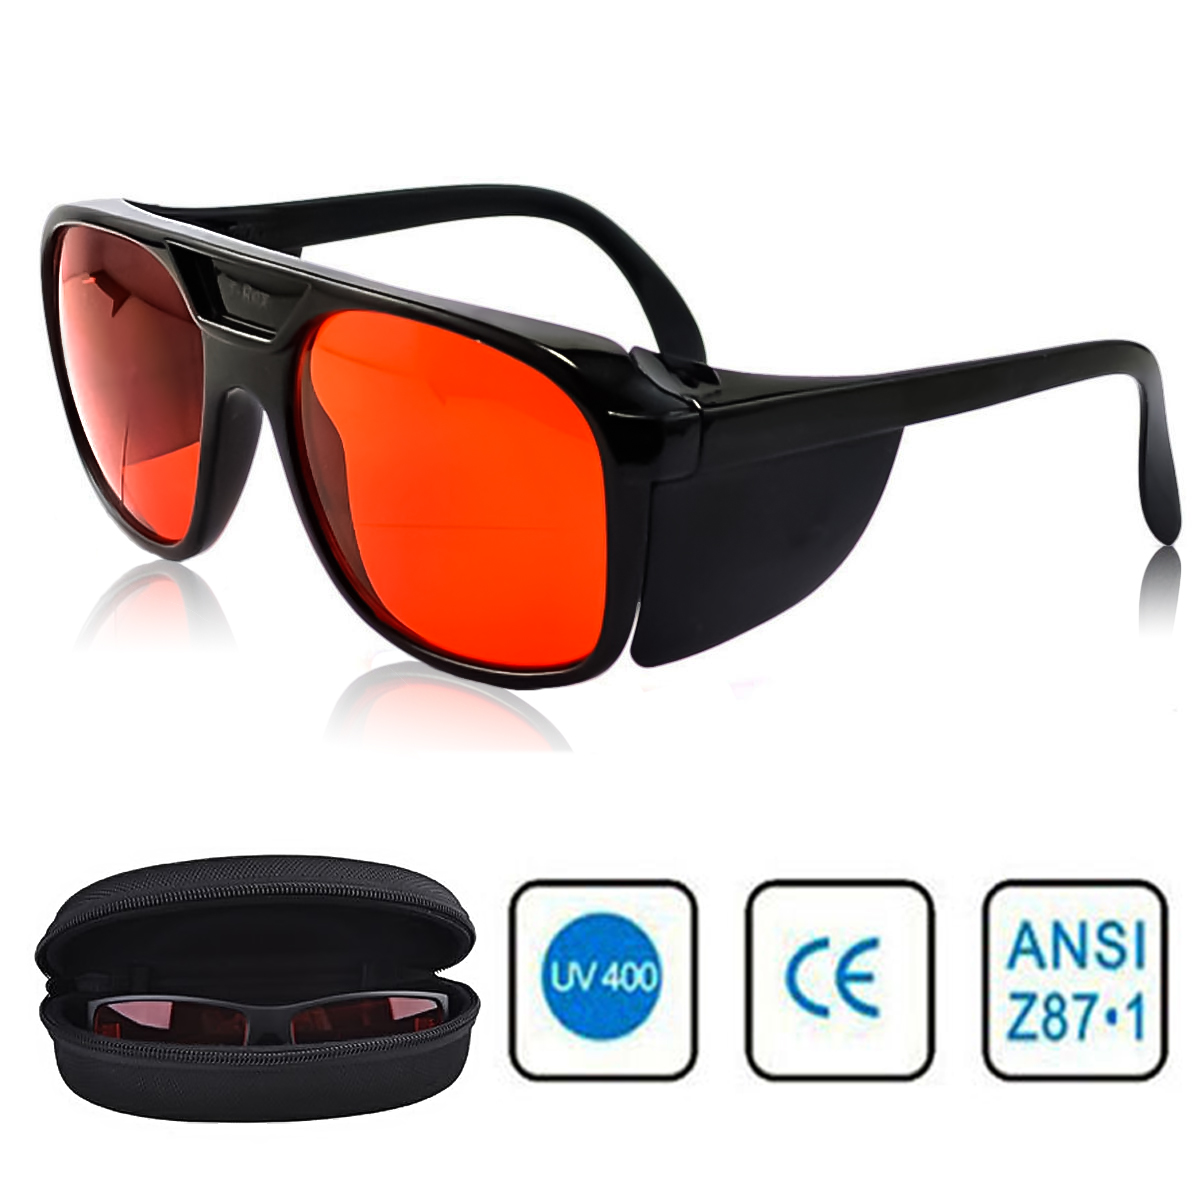 3327fe1c689 Eyewear - Colorblindness Color Blind Corrective Glasses for Red ...